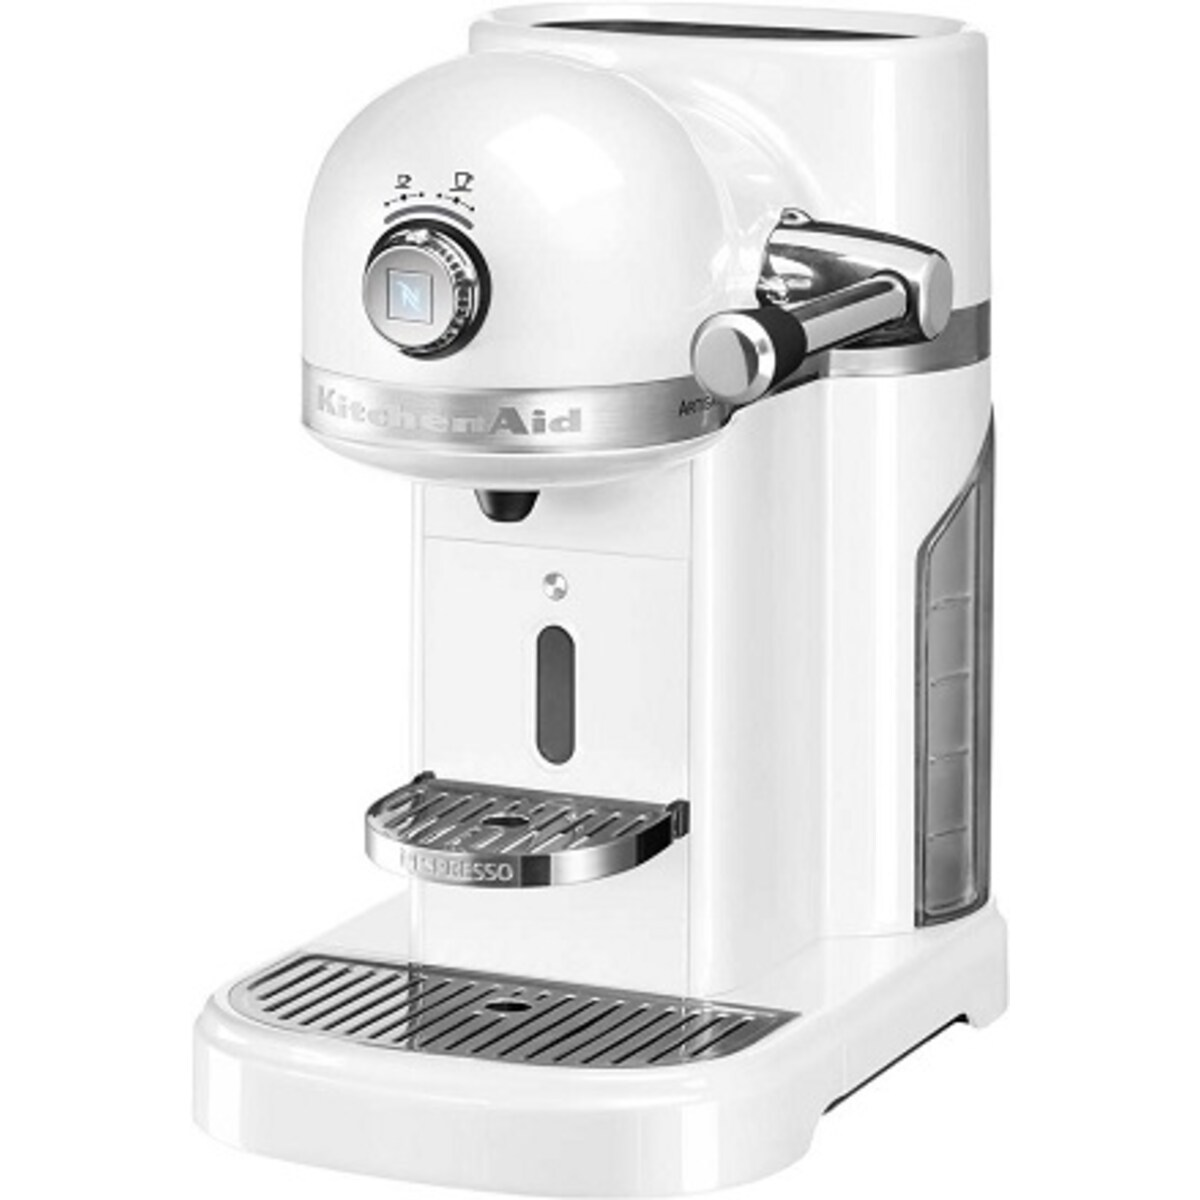 Nespresso Kitchen Aid Frosted Pearl